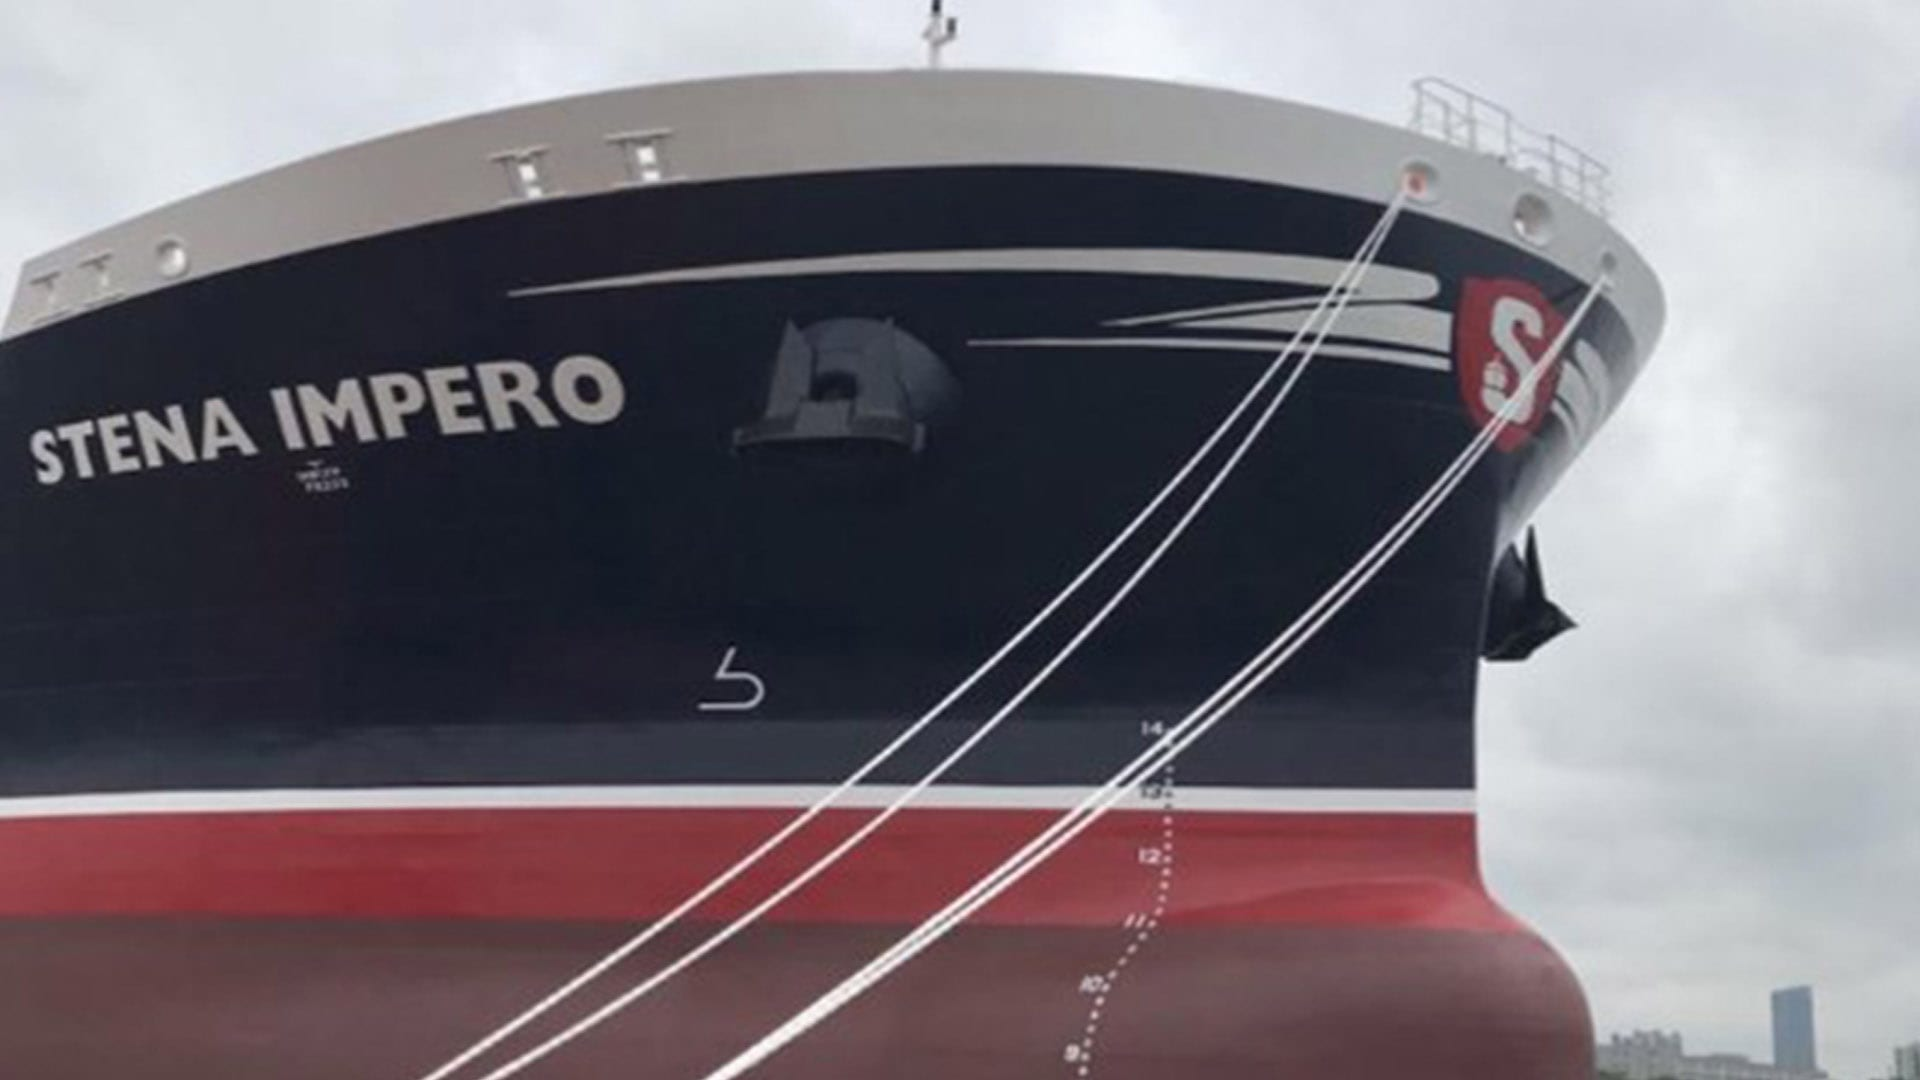 Seized Stena Impero Leaves Iran, Owner Confirms